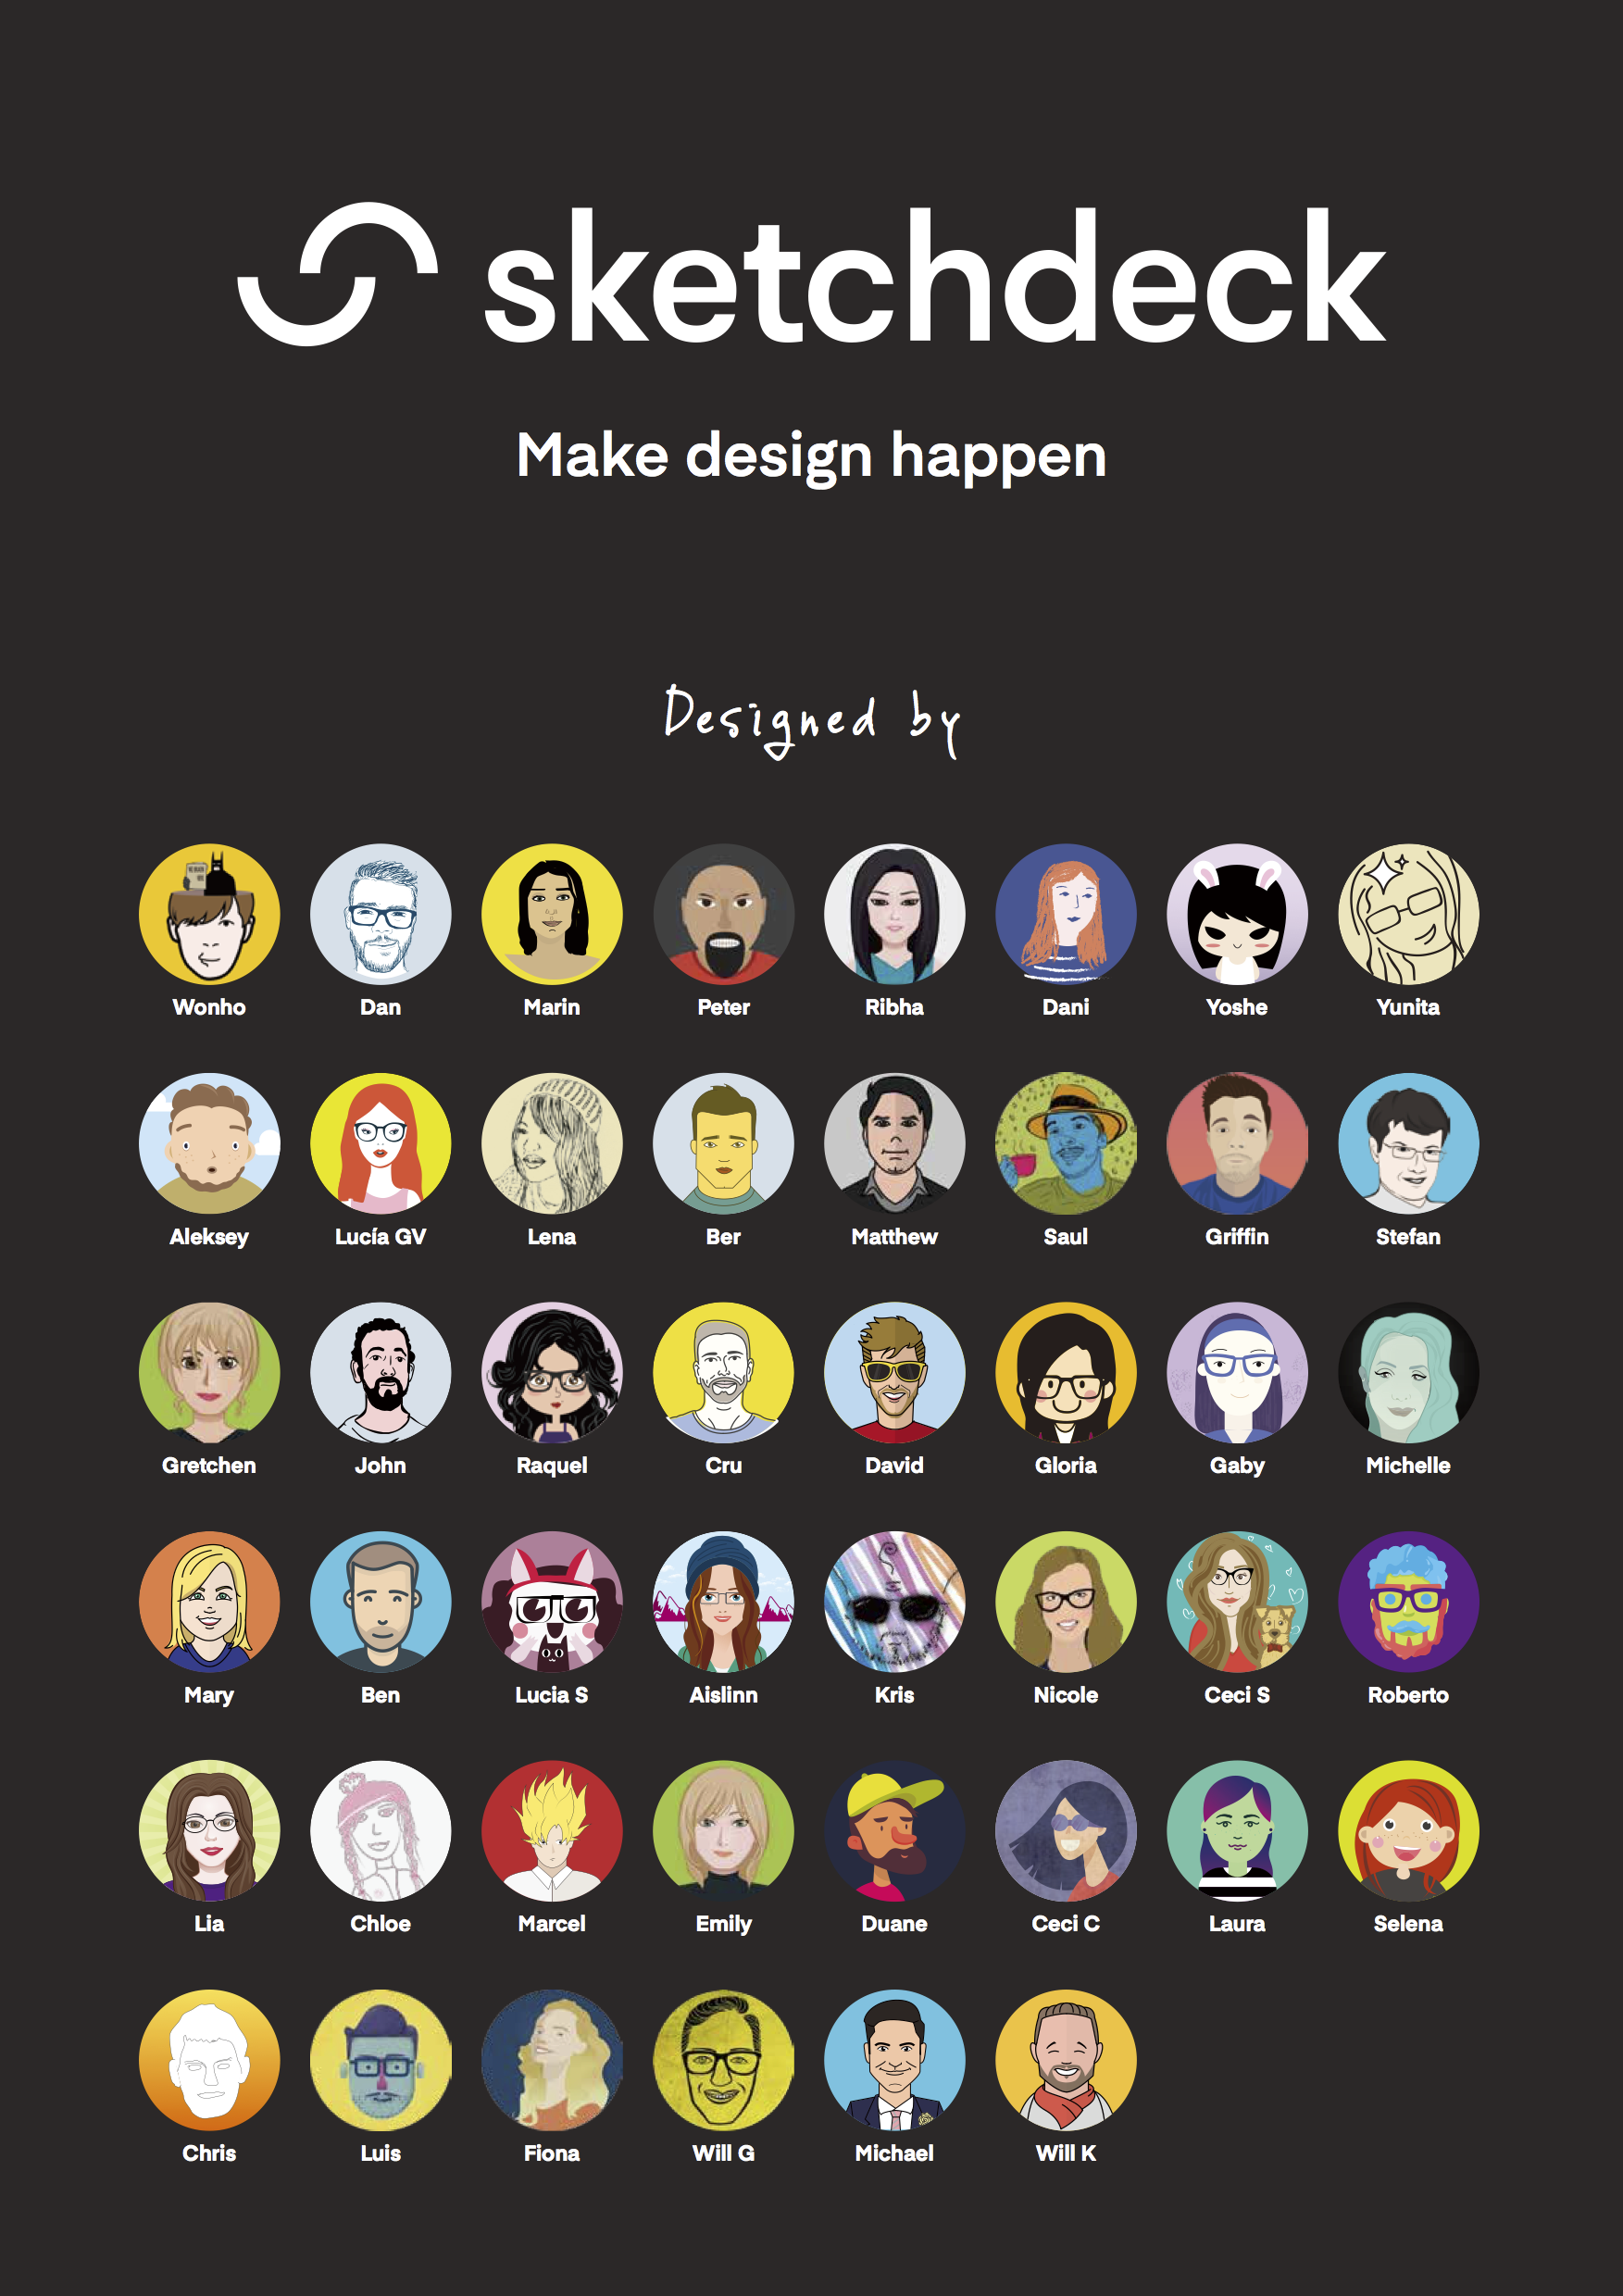 Poster of all the designers who worked on the new brand